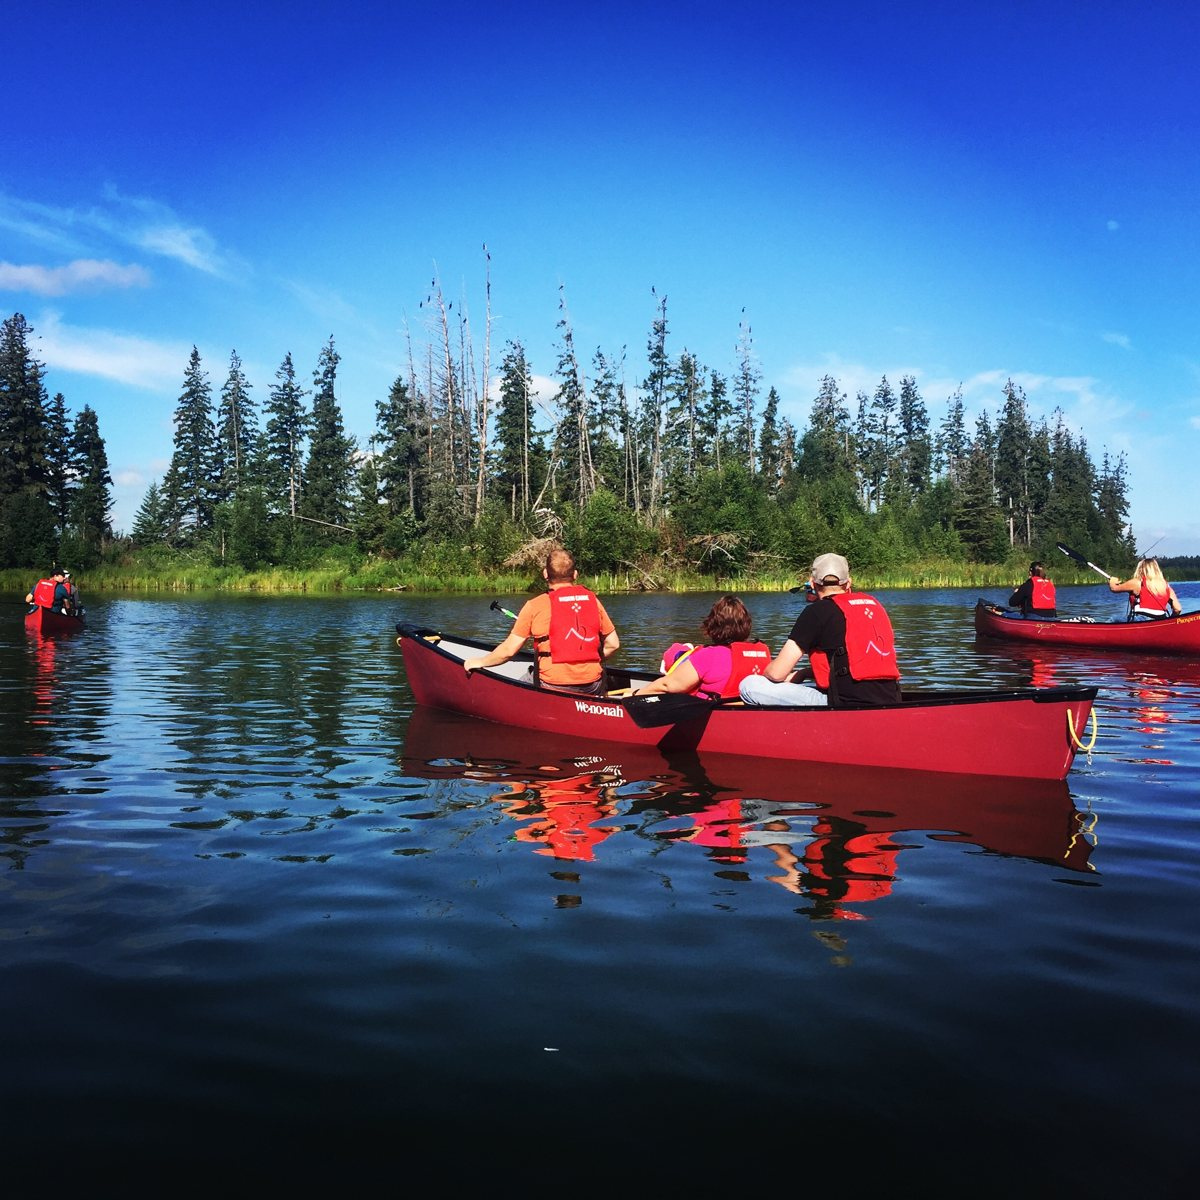 Priscilla Haskin - A family paddle at Astotin Lake, Elk Island National Park, Alberta